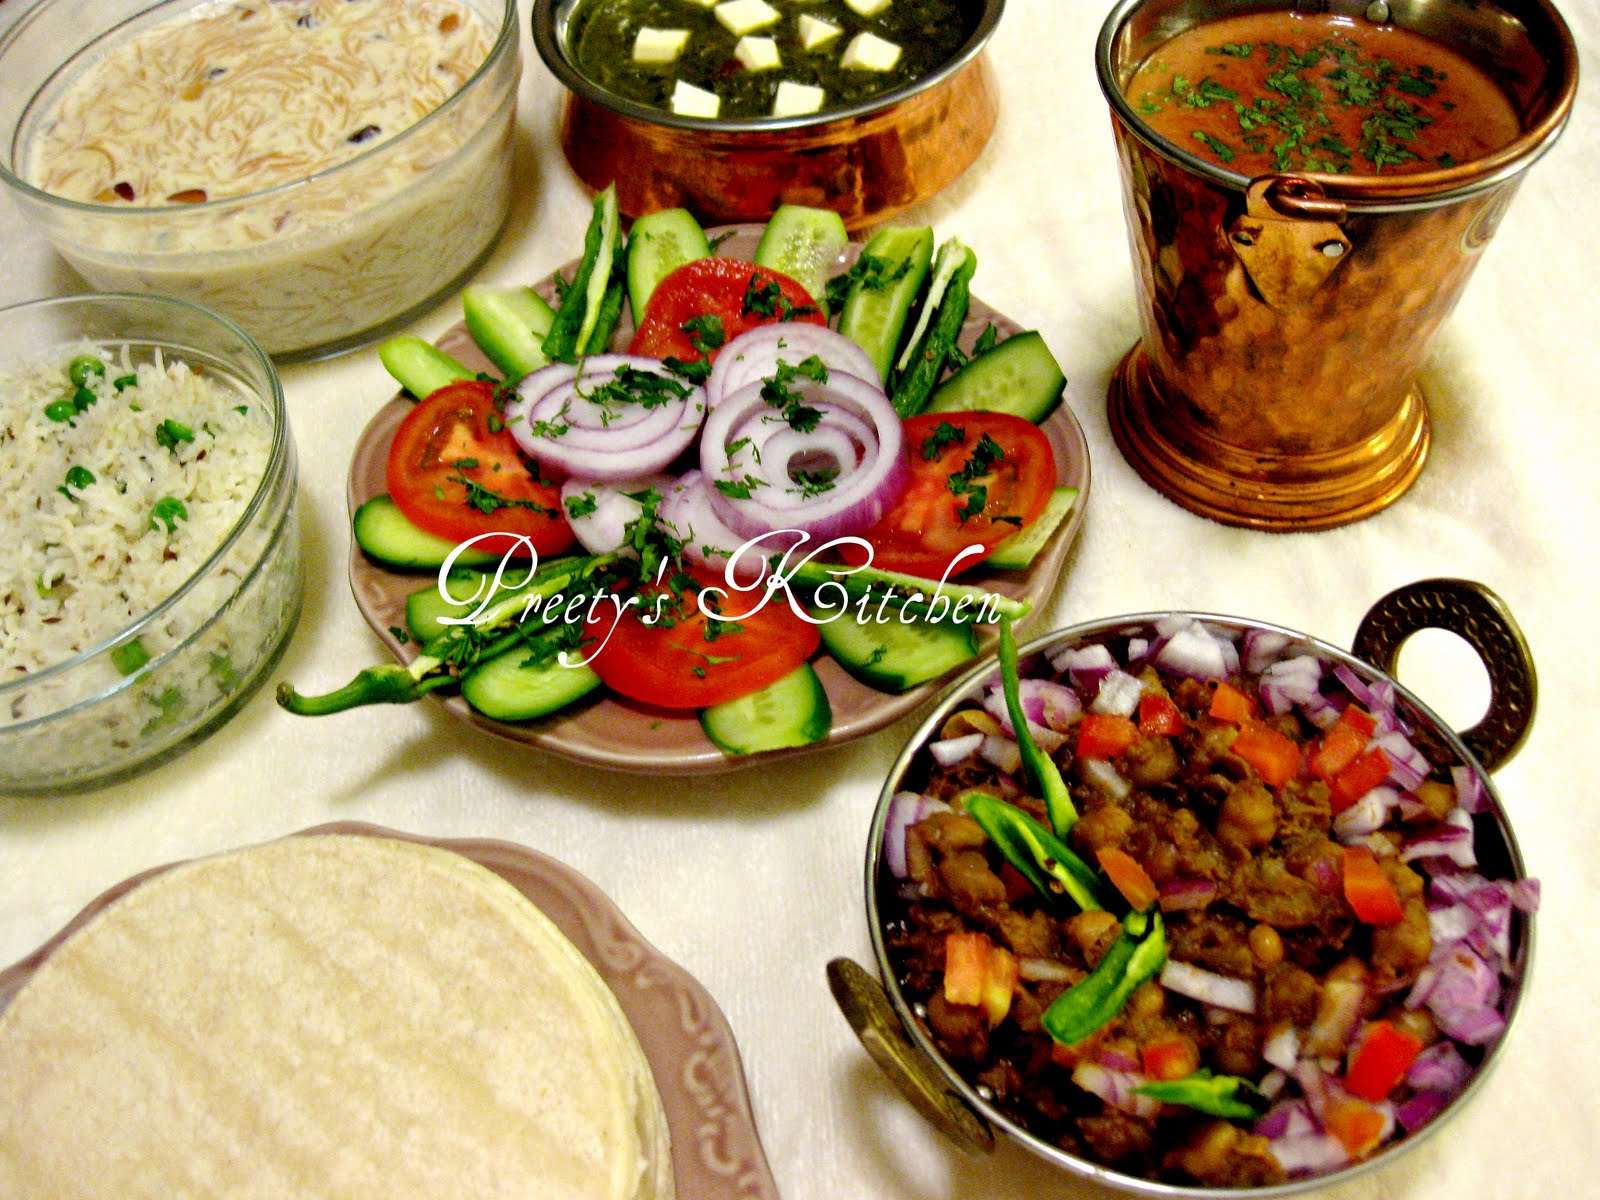 Preety 39 s kitchen punjabi style indian meal nov 24x24 for Authentic punjabi cuisine